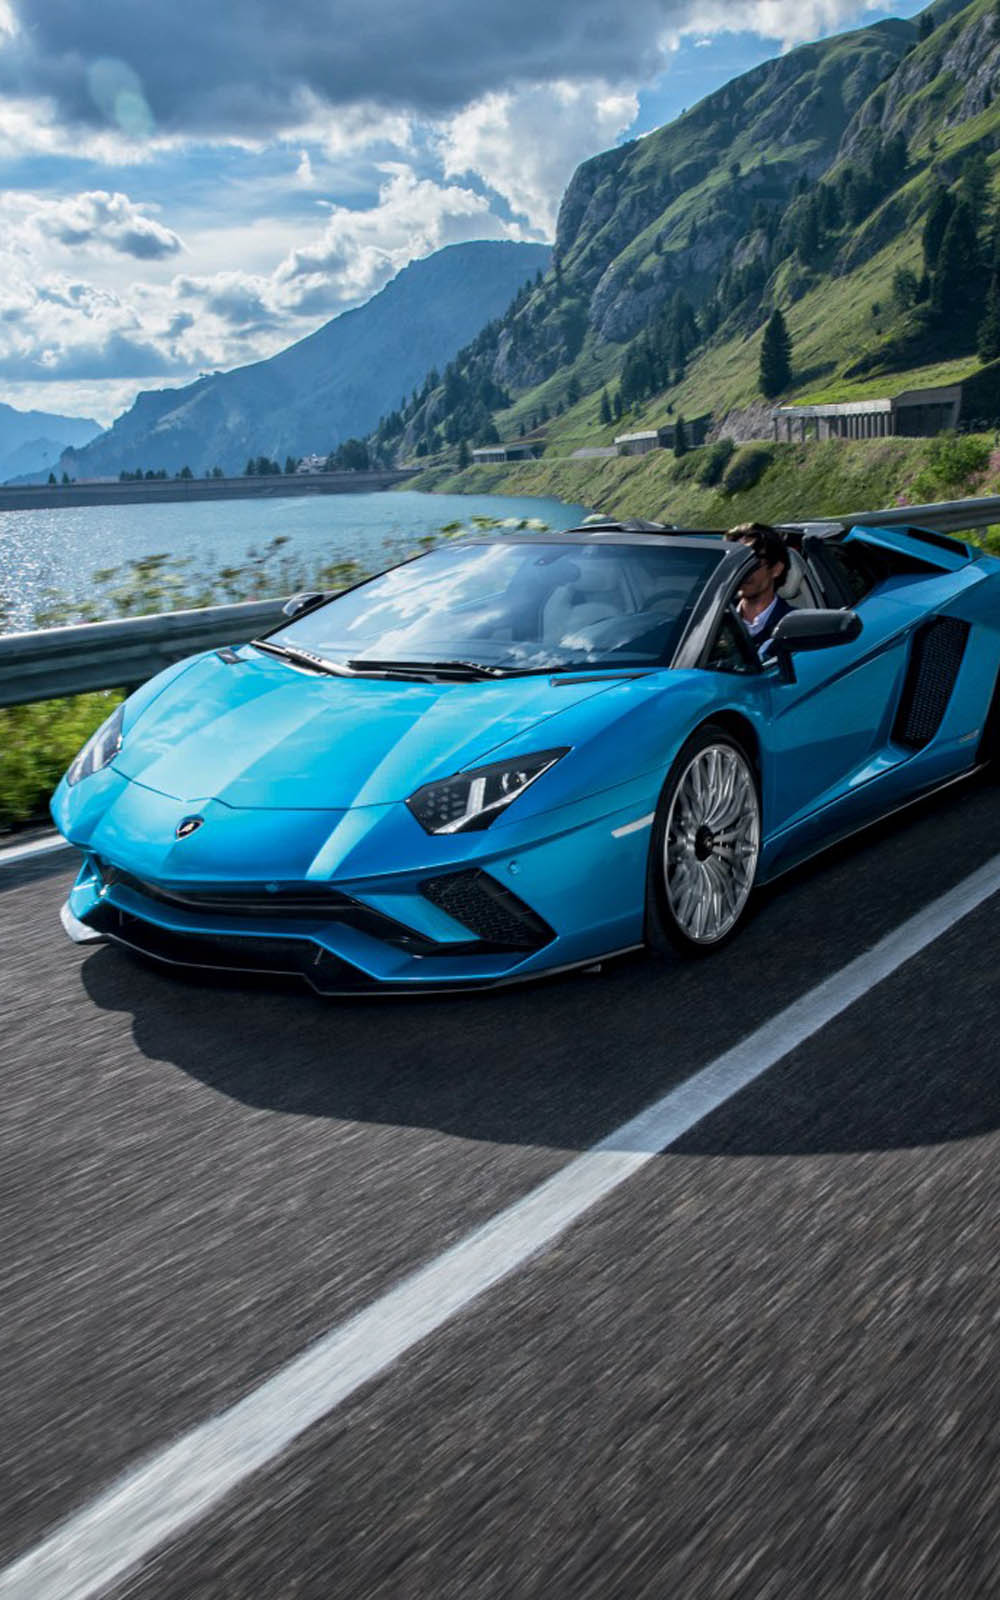 Find out with this car logo quiz! Lamborghini Car Wallpaper Hd For Mobile 1000x1600 Wallpaper Teahub Io